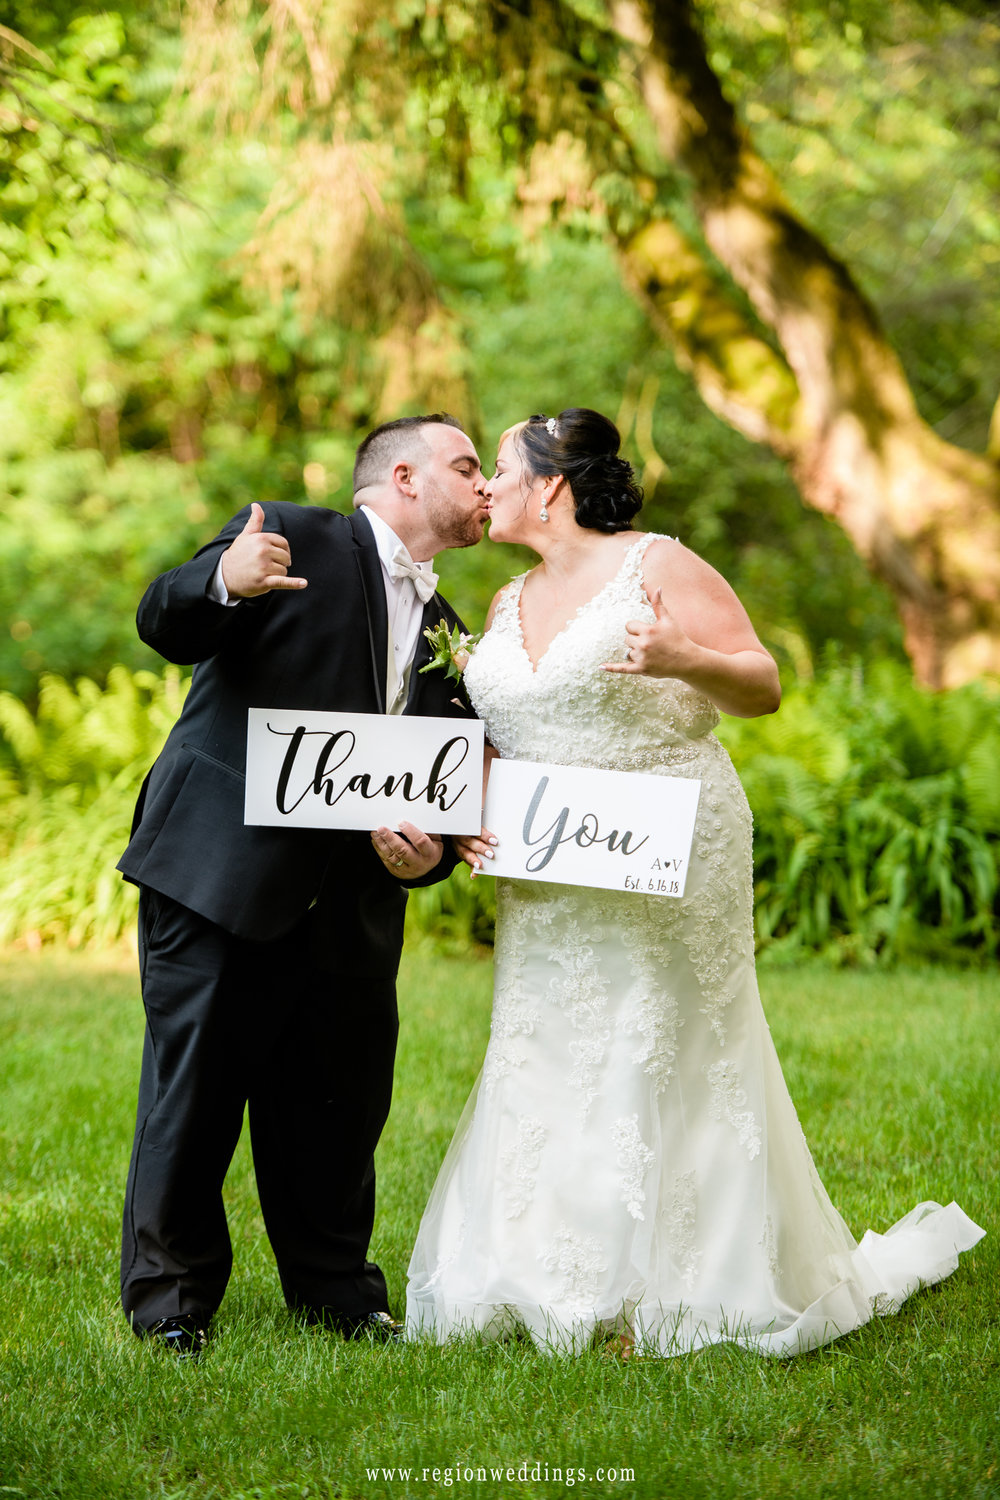 thank-you-photo-bride-groom.jpg